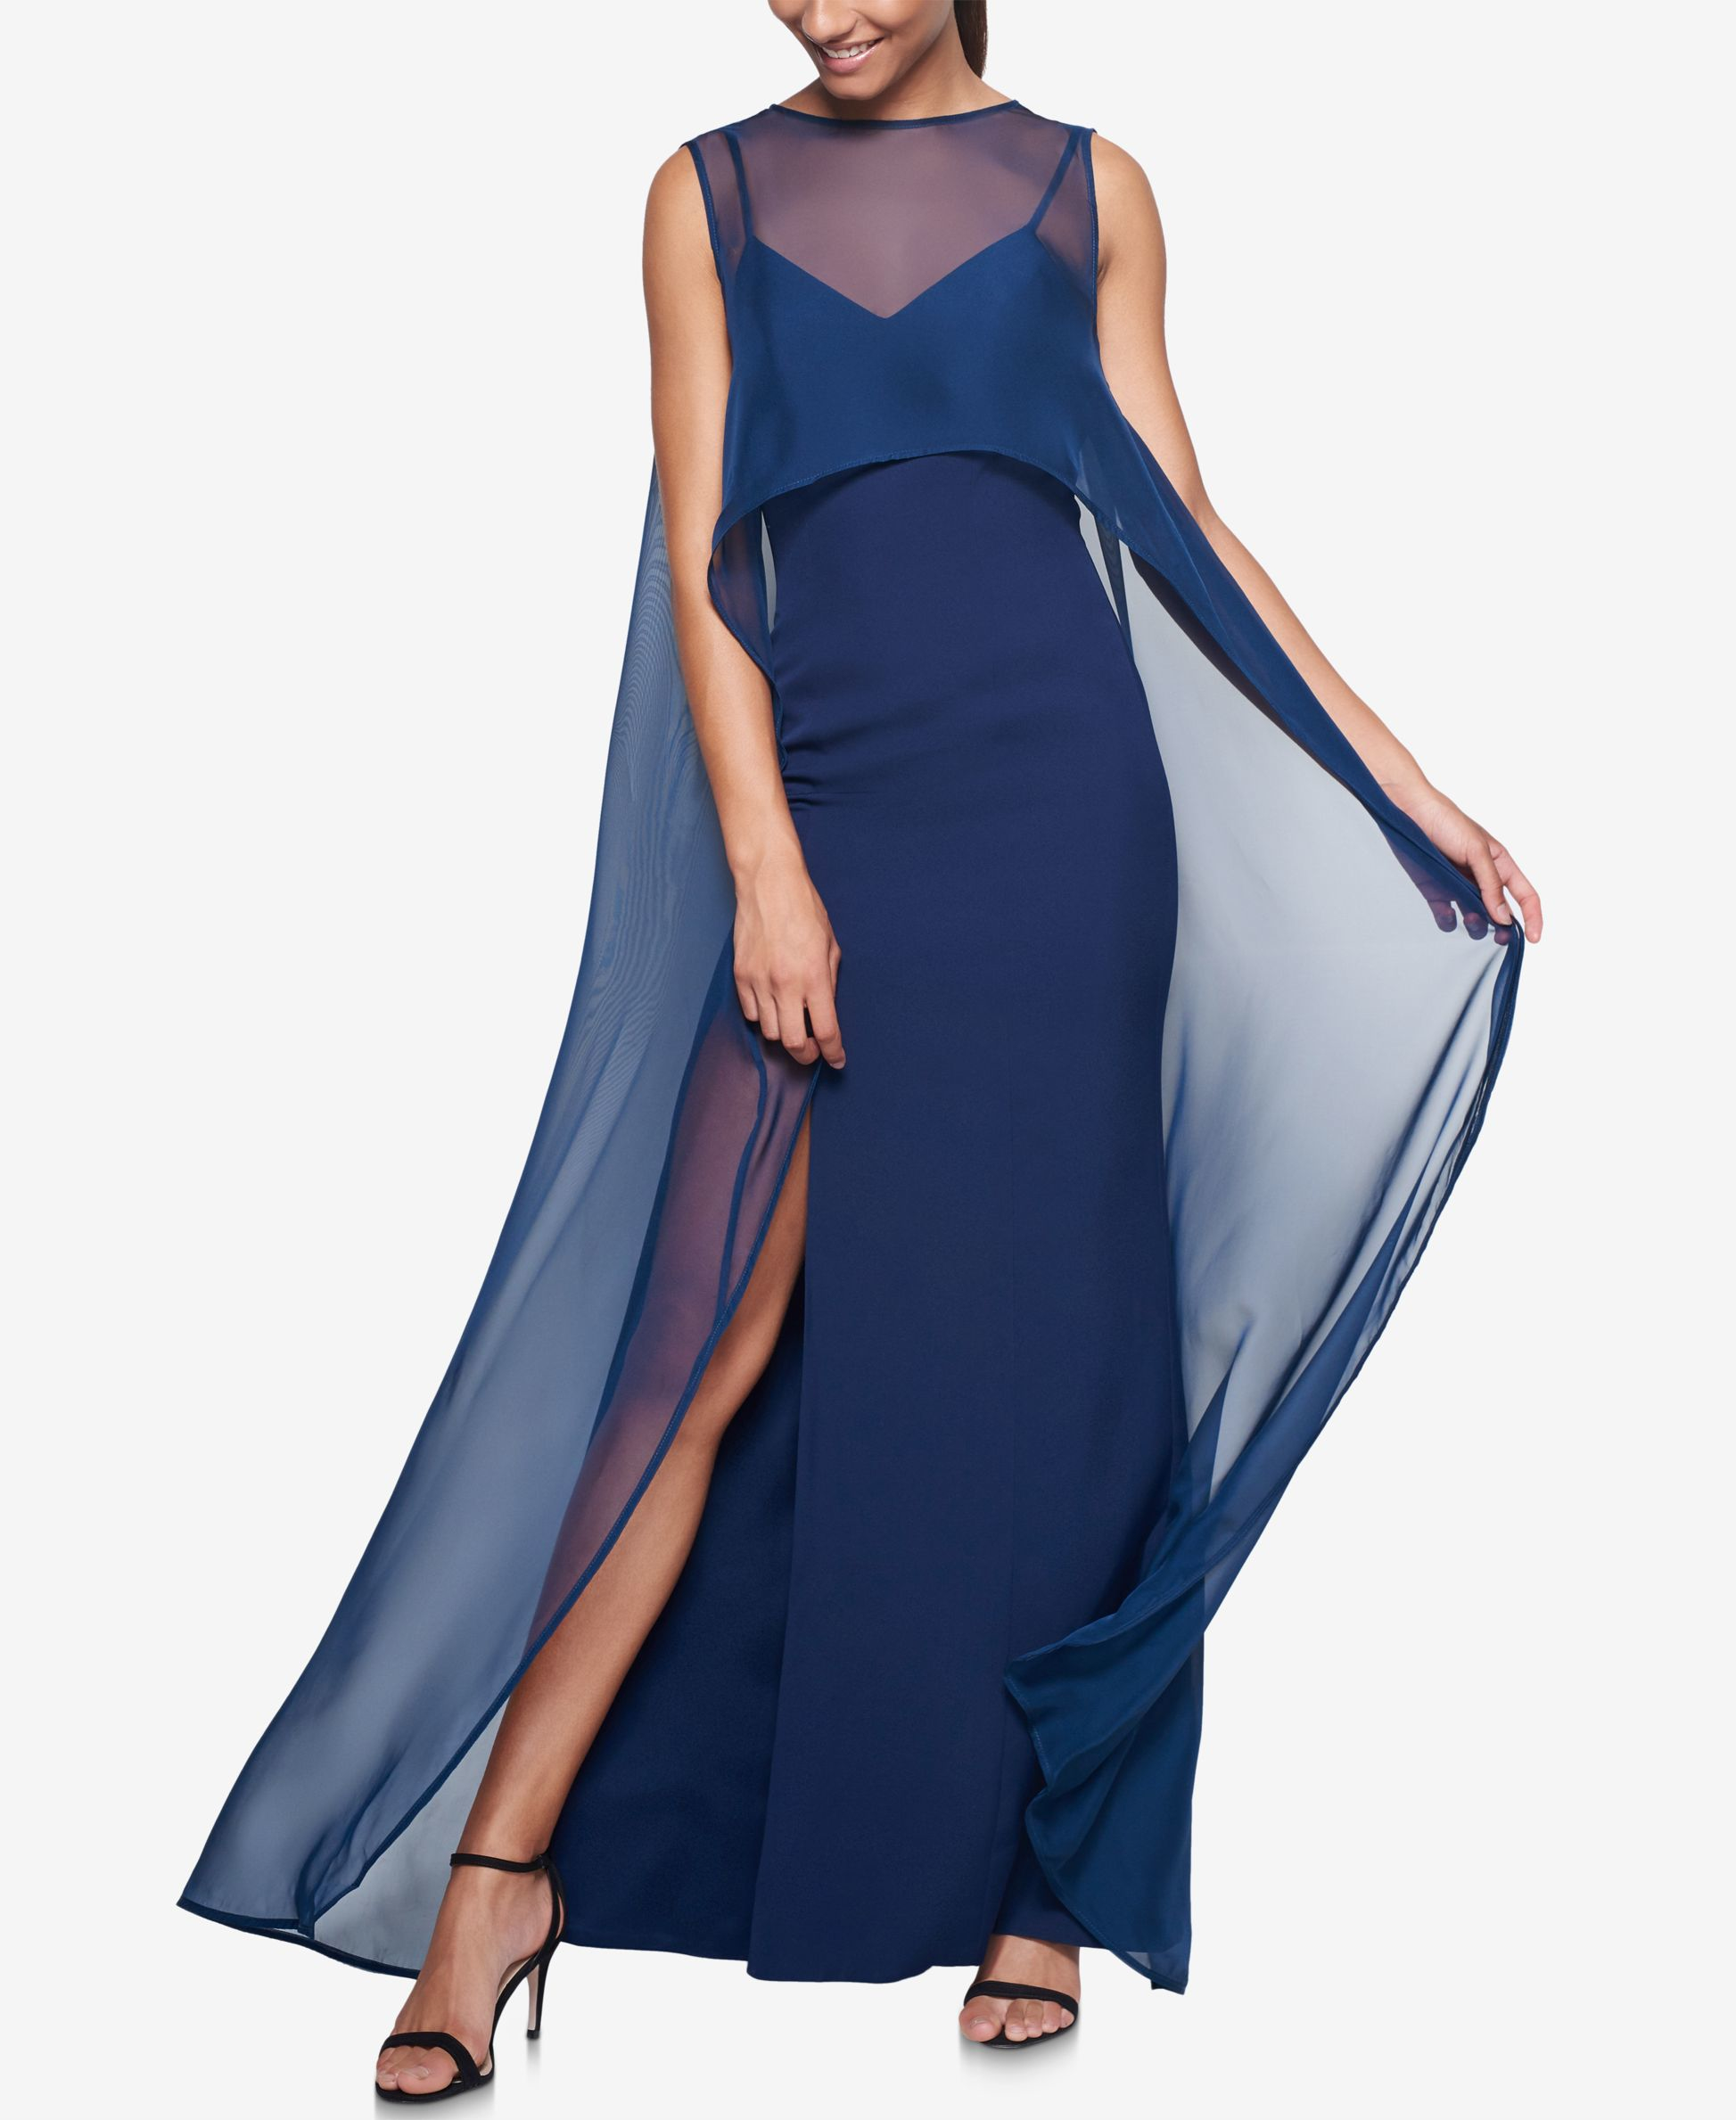 Lyst - Fame & Partners Chiffon Overlay Cape Dress in Blue